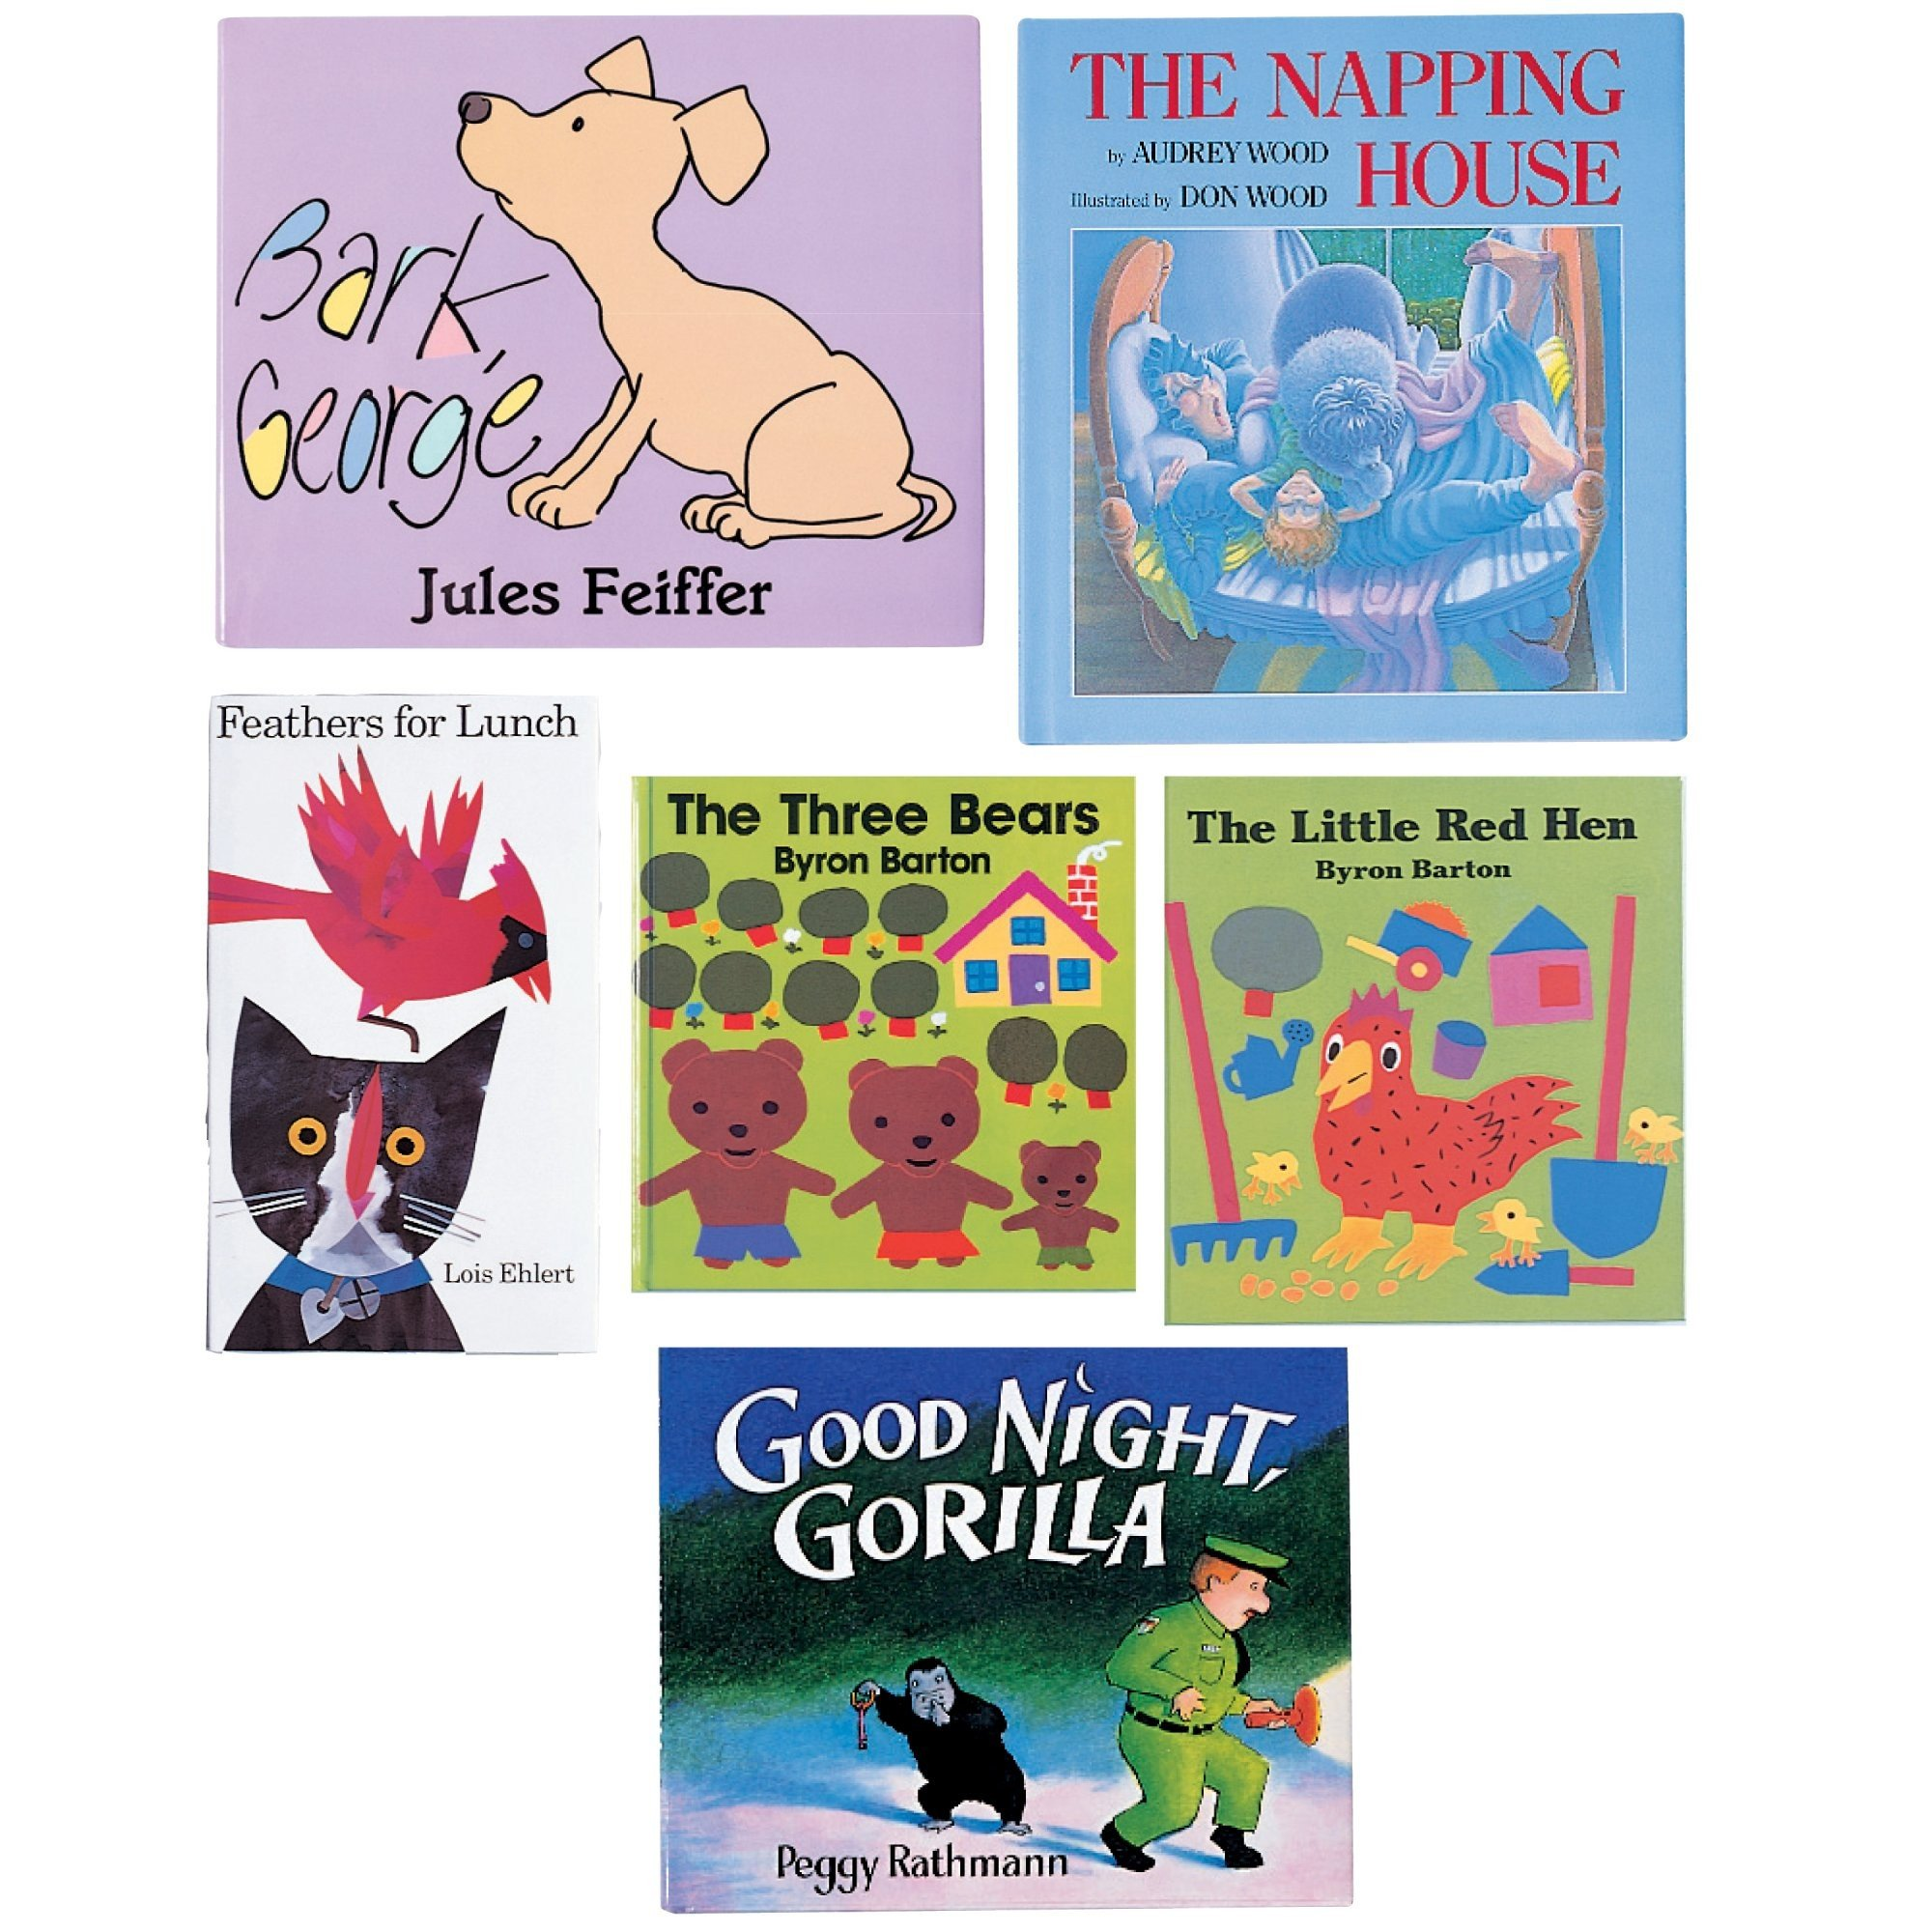 Constructive Playthings BOK-105 Classroom Essentials, Classics Hardcover Books, Grade: Kindergarten to 1, Set of 6